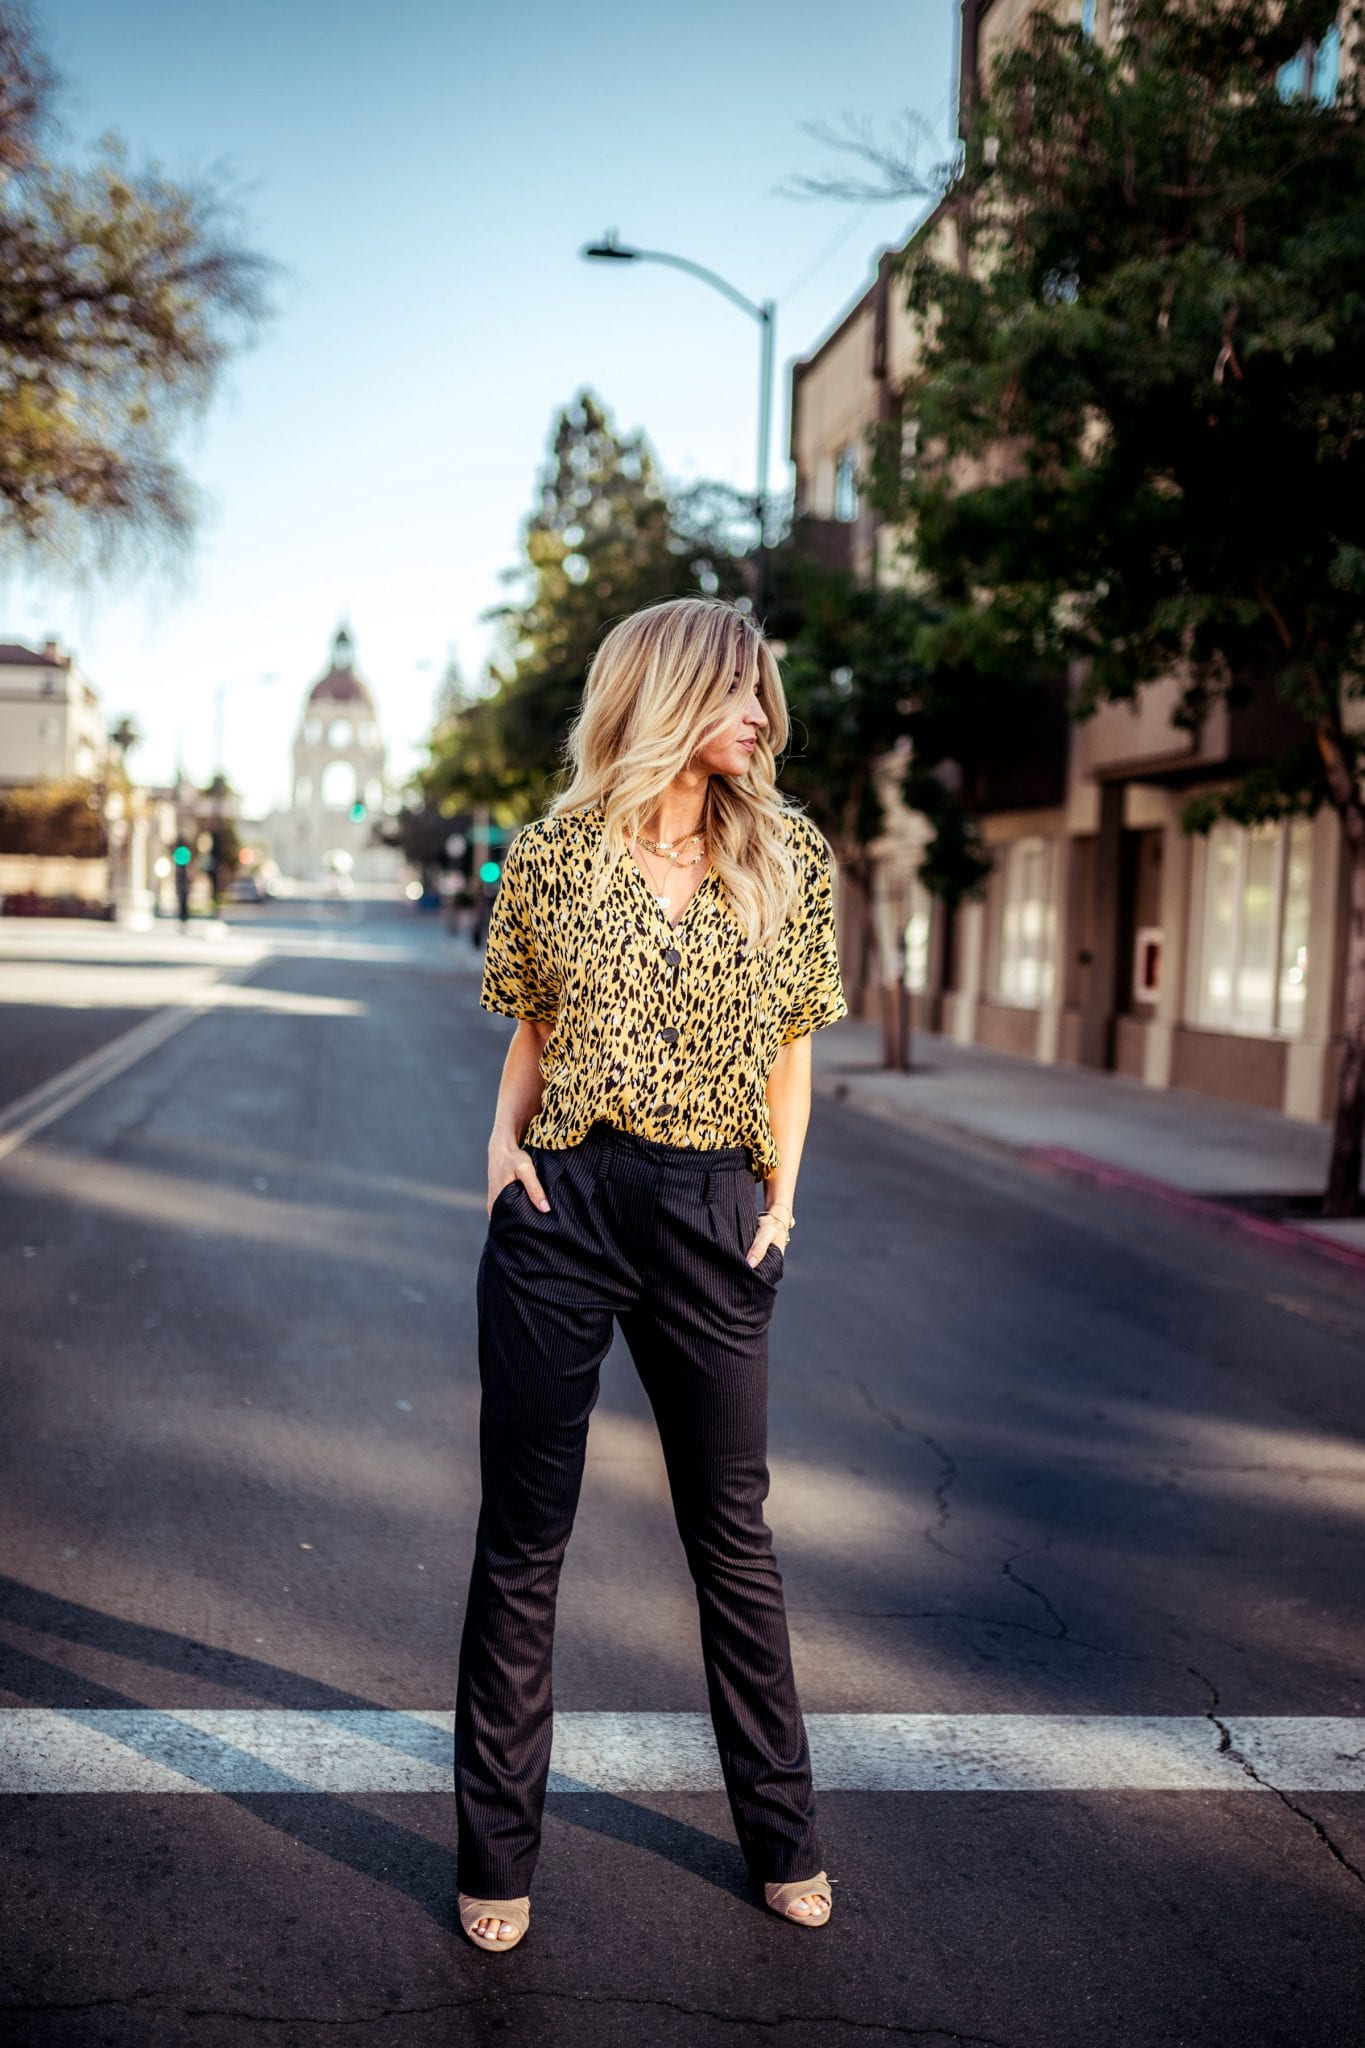 Animal print blouse + navy trousers